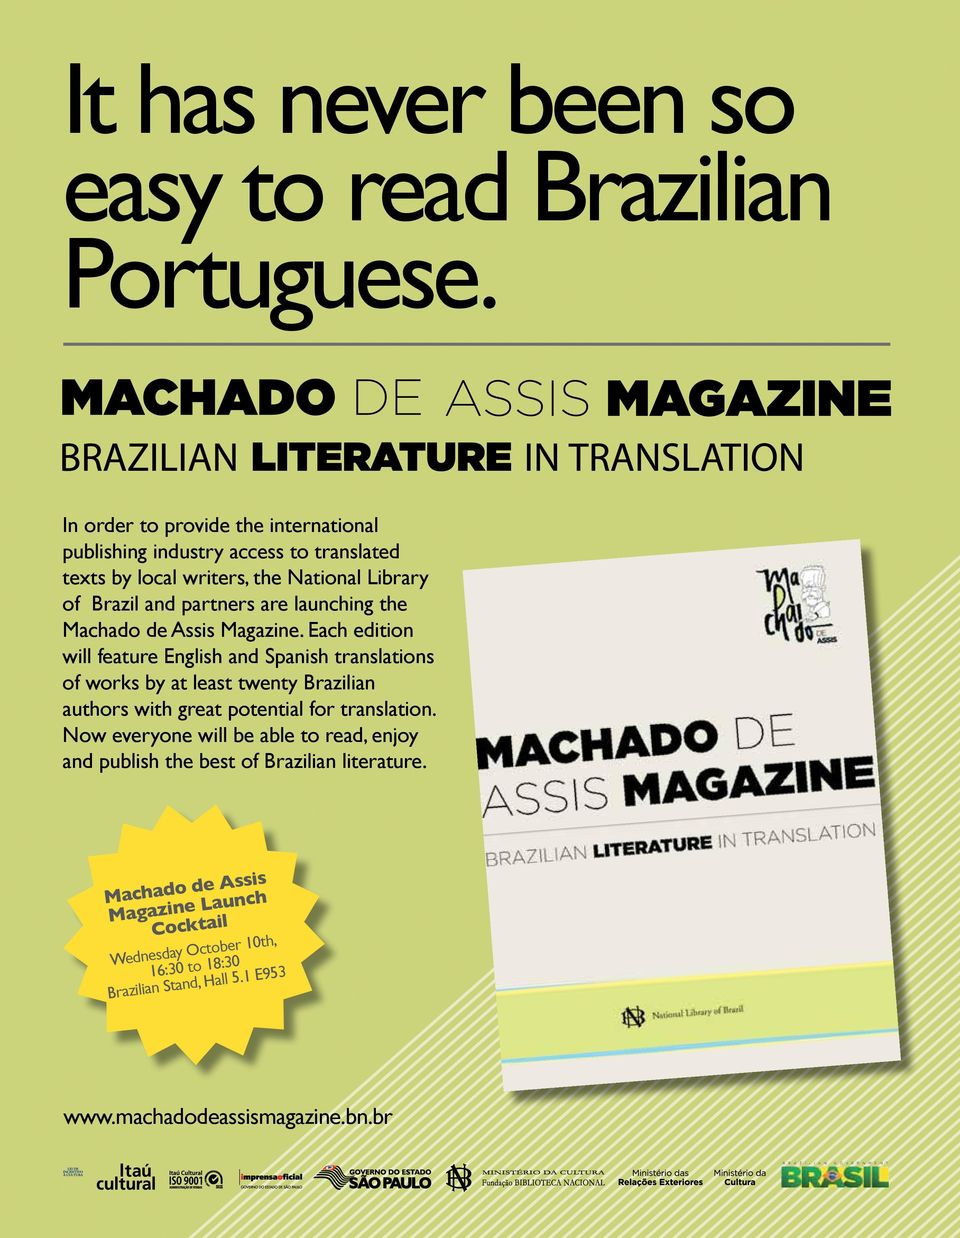 launching the Machado de Assis Magazine.